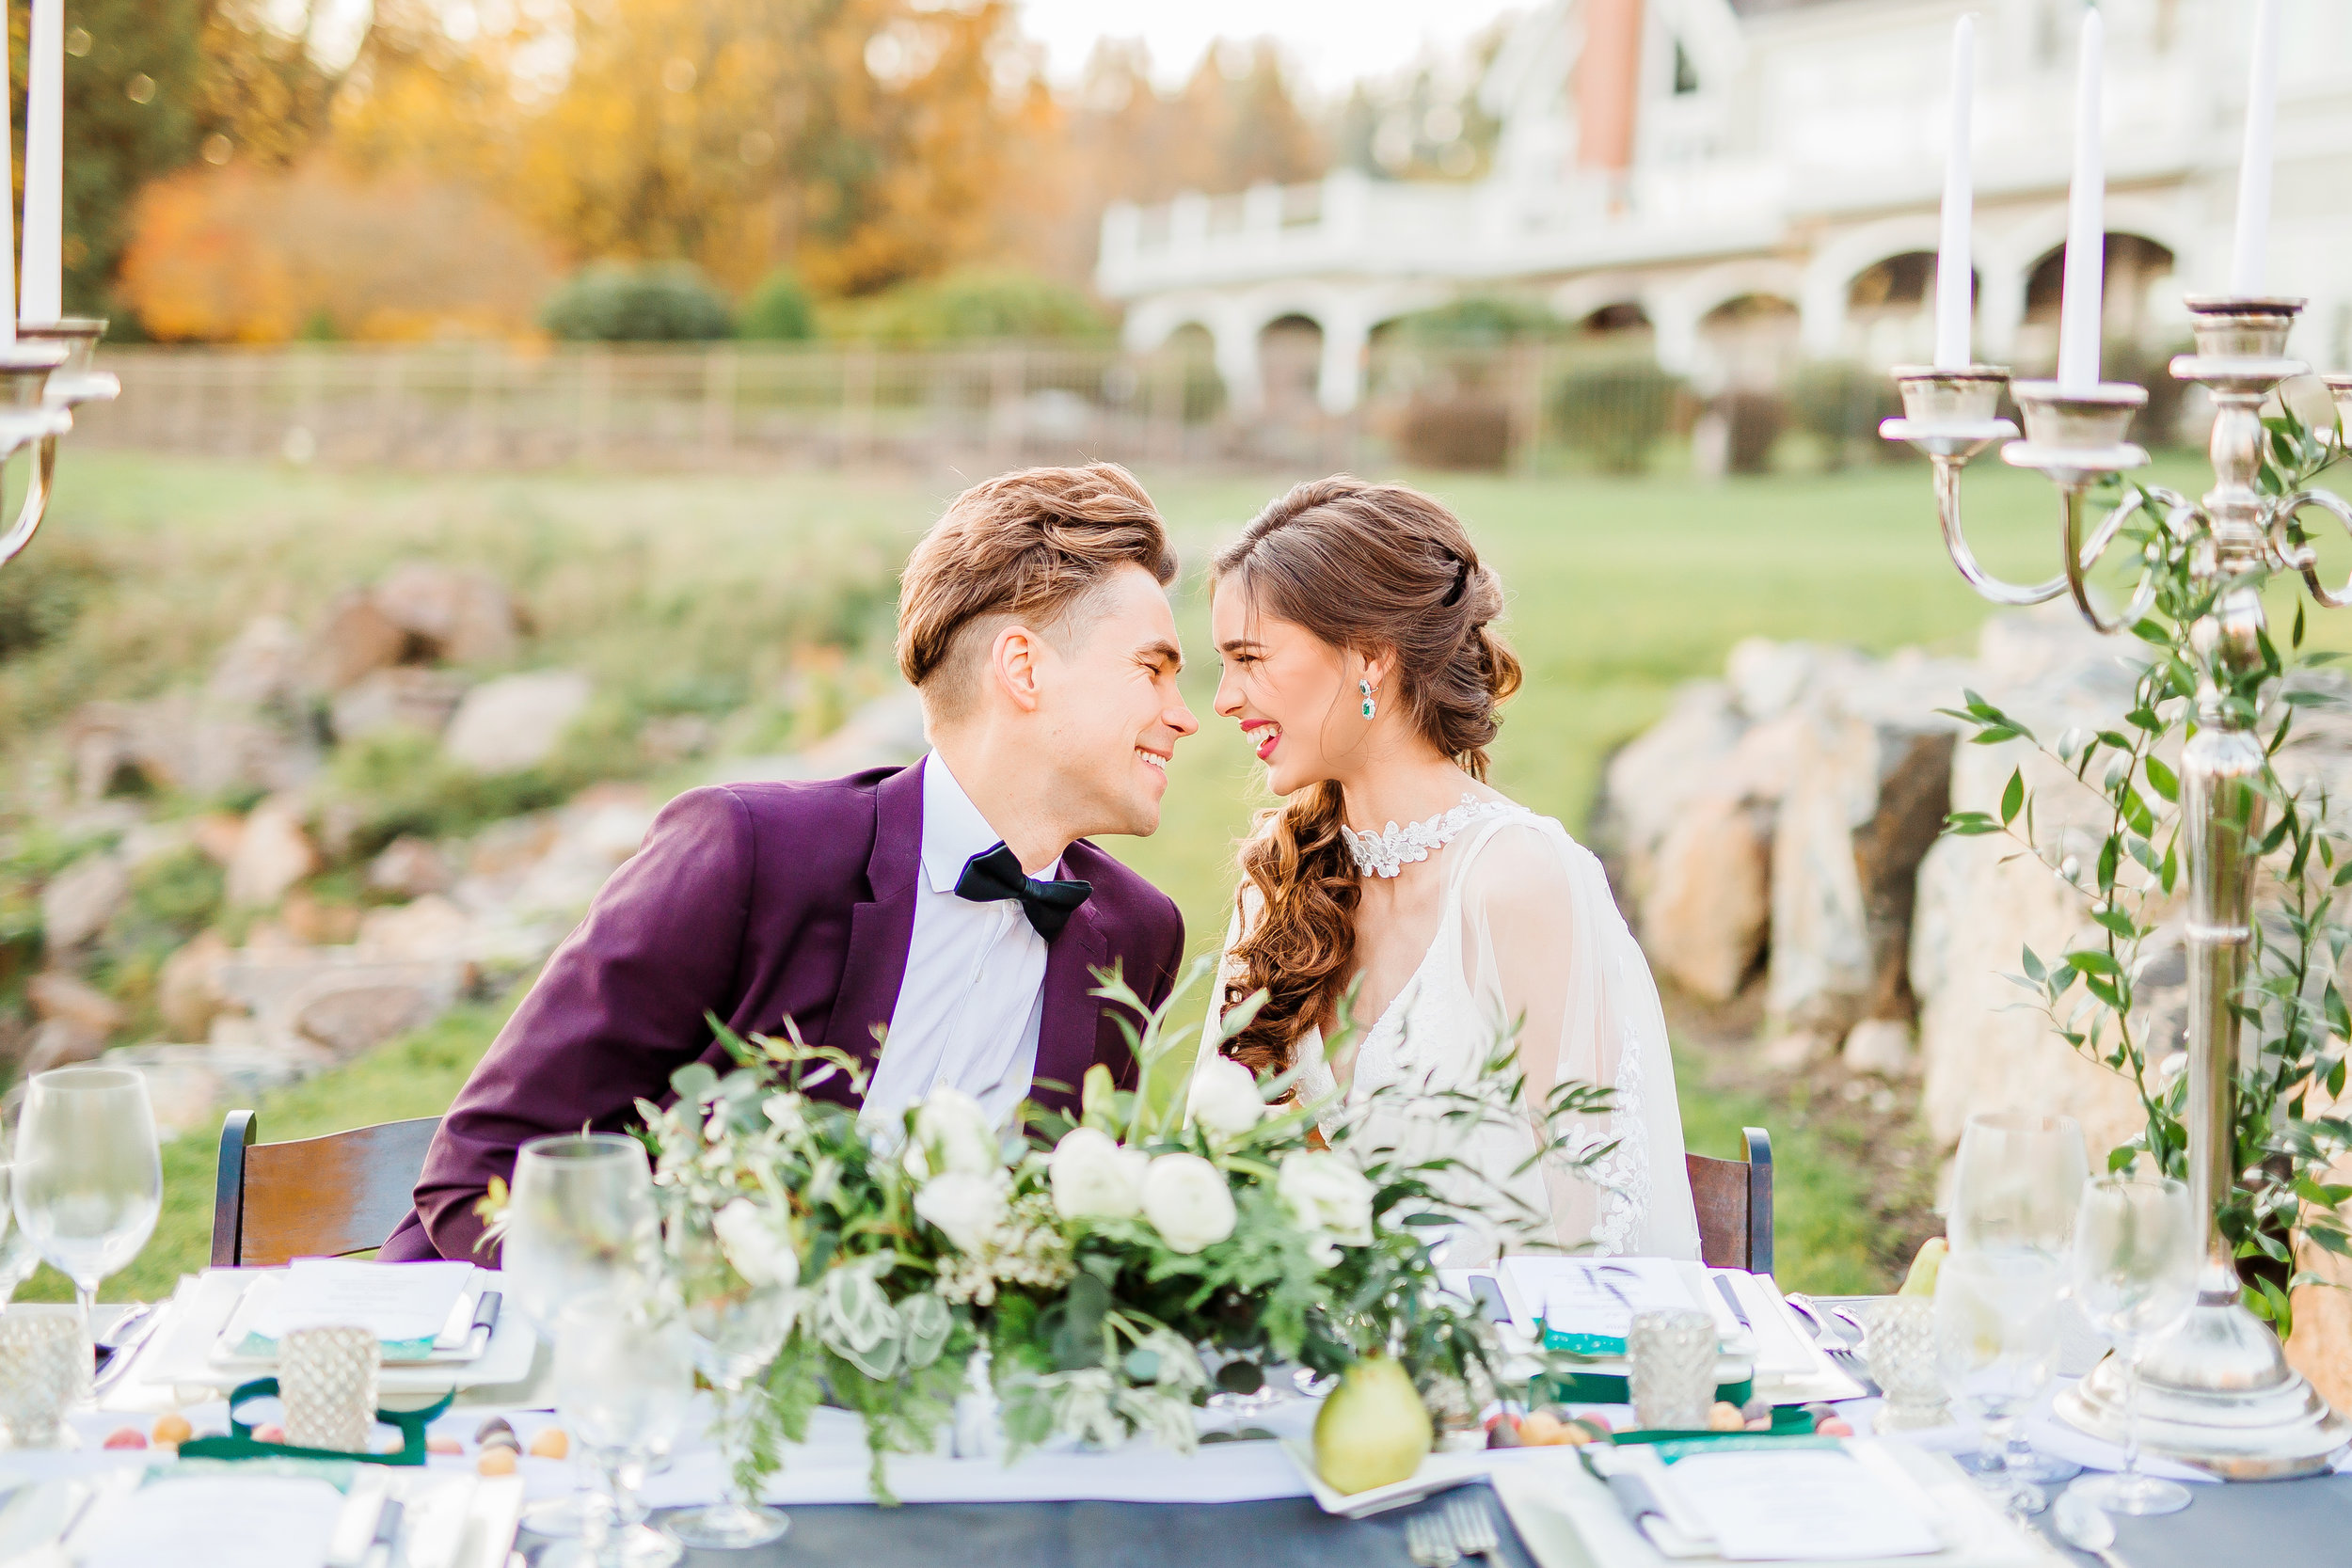 Styled Shoot Featured on Pacific Coast Weddings